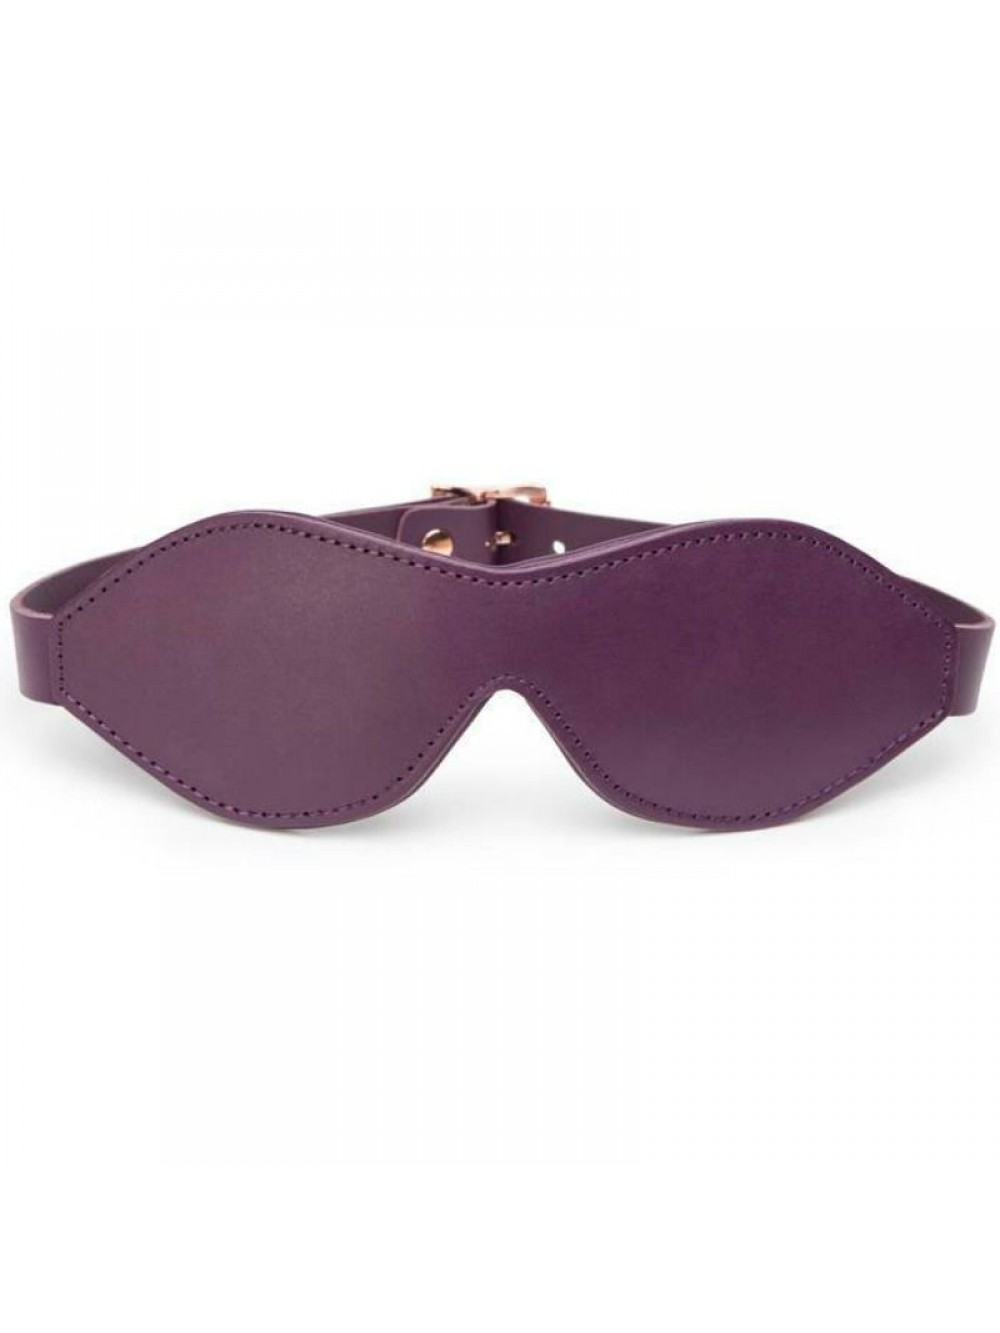 FIFTY SHADES FREED LEATHER BLINDFOLD